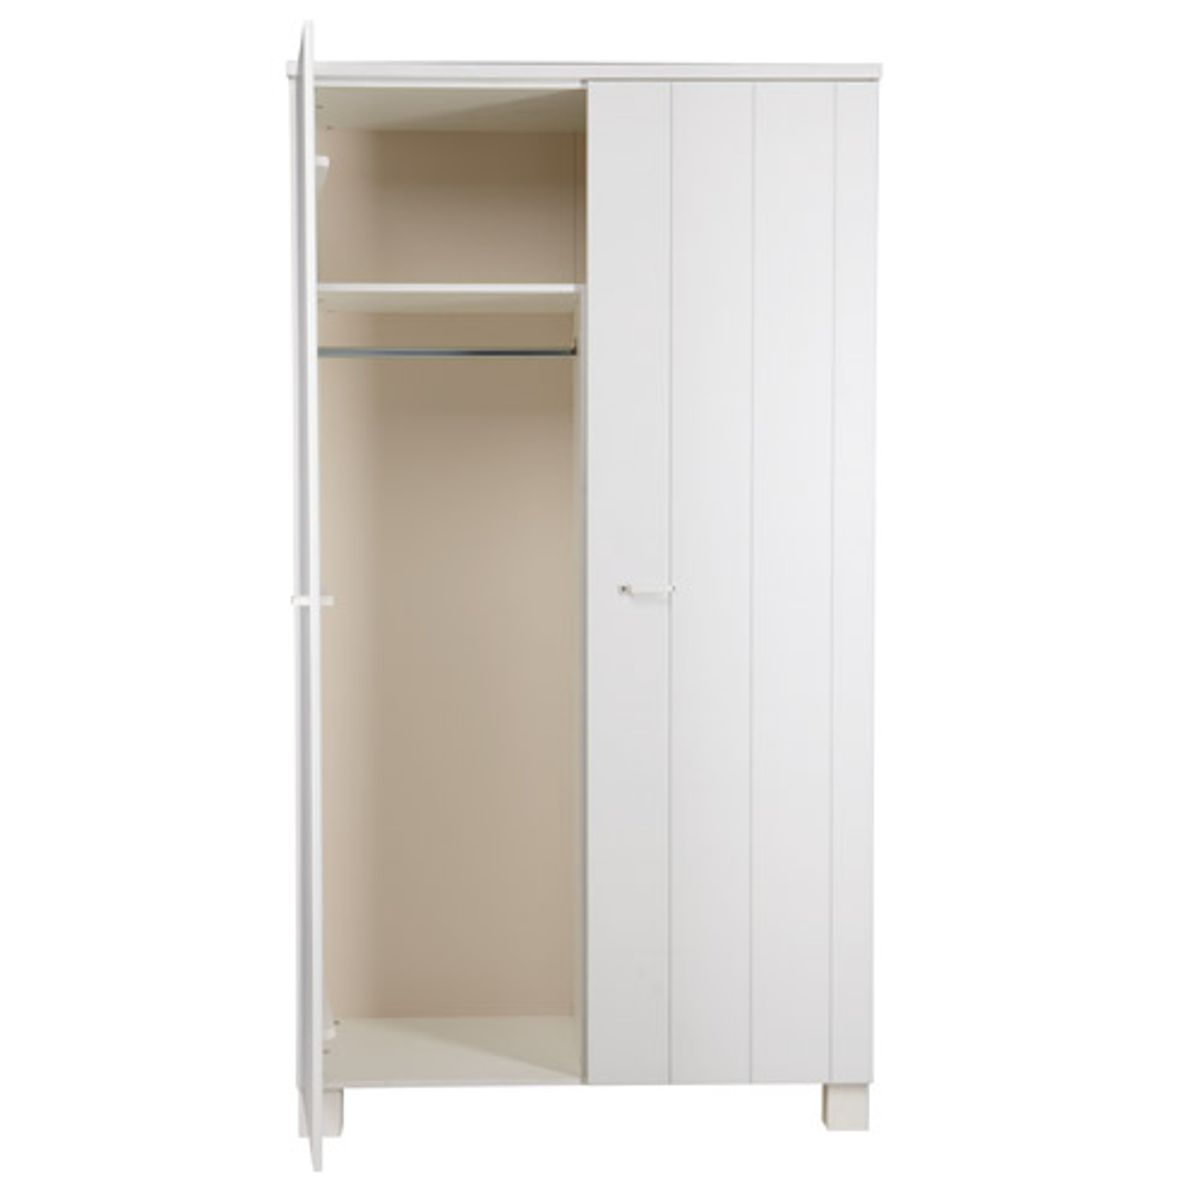 armoire pin massif blanc meuble buffet enfilade en pin massif blanc et cir portes made in. Black Bedroom Furniture Sets. Home Design Ideas